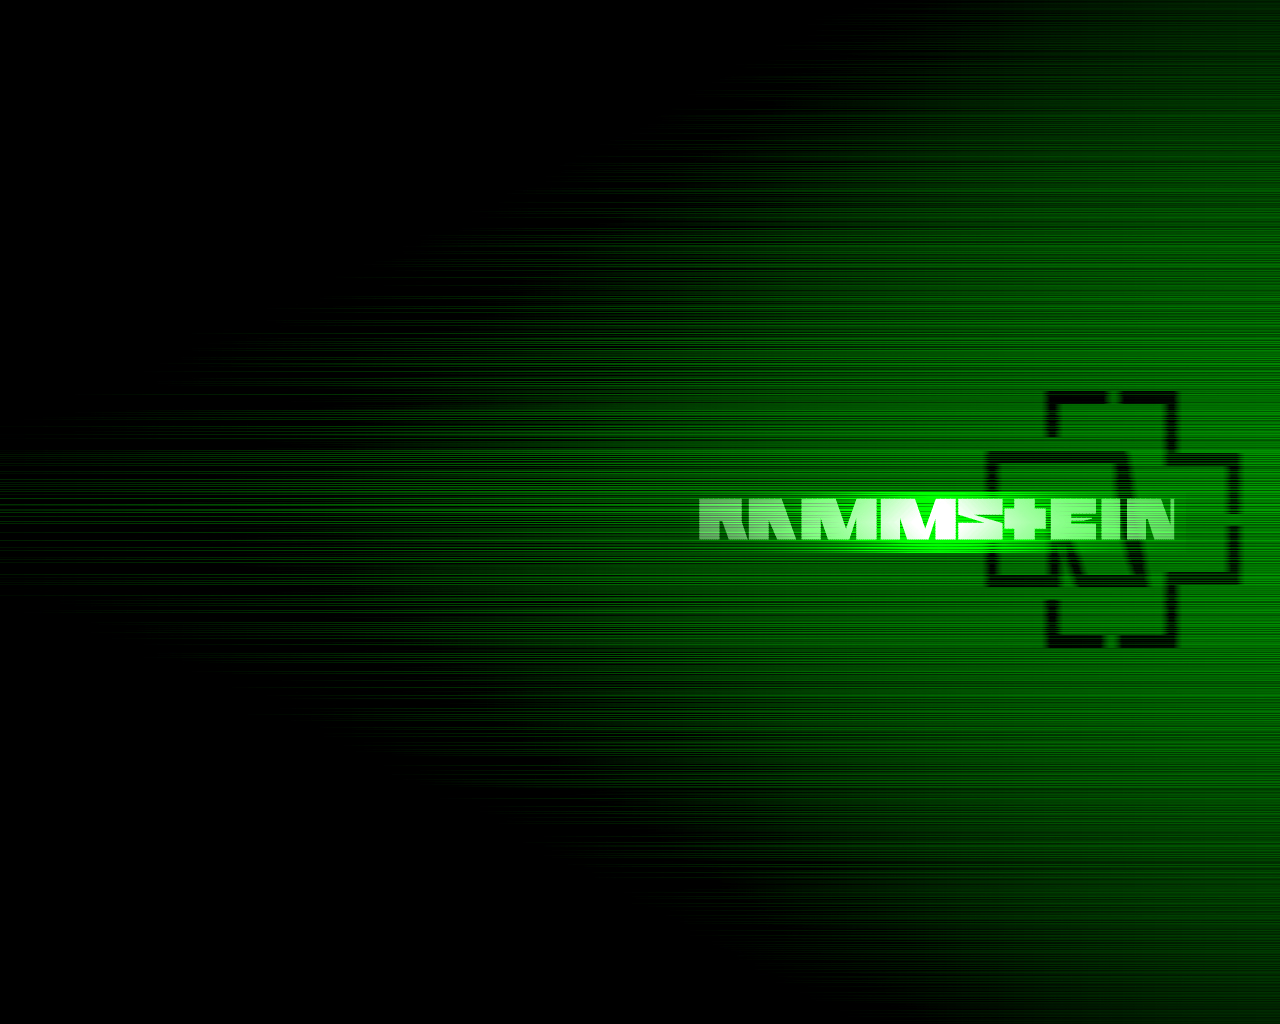 38 Rammstein HD Wallpapers Backgrounds 1280x1024